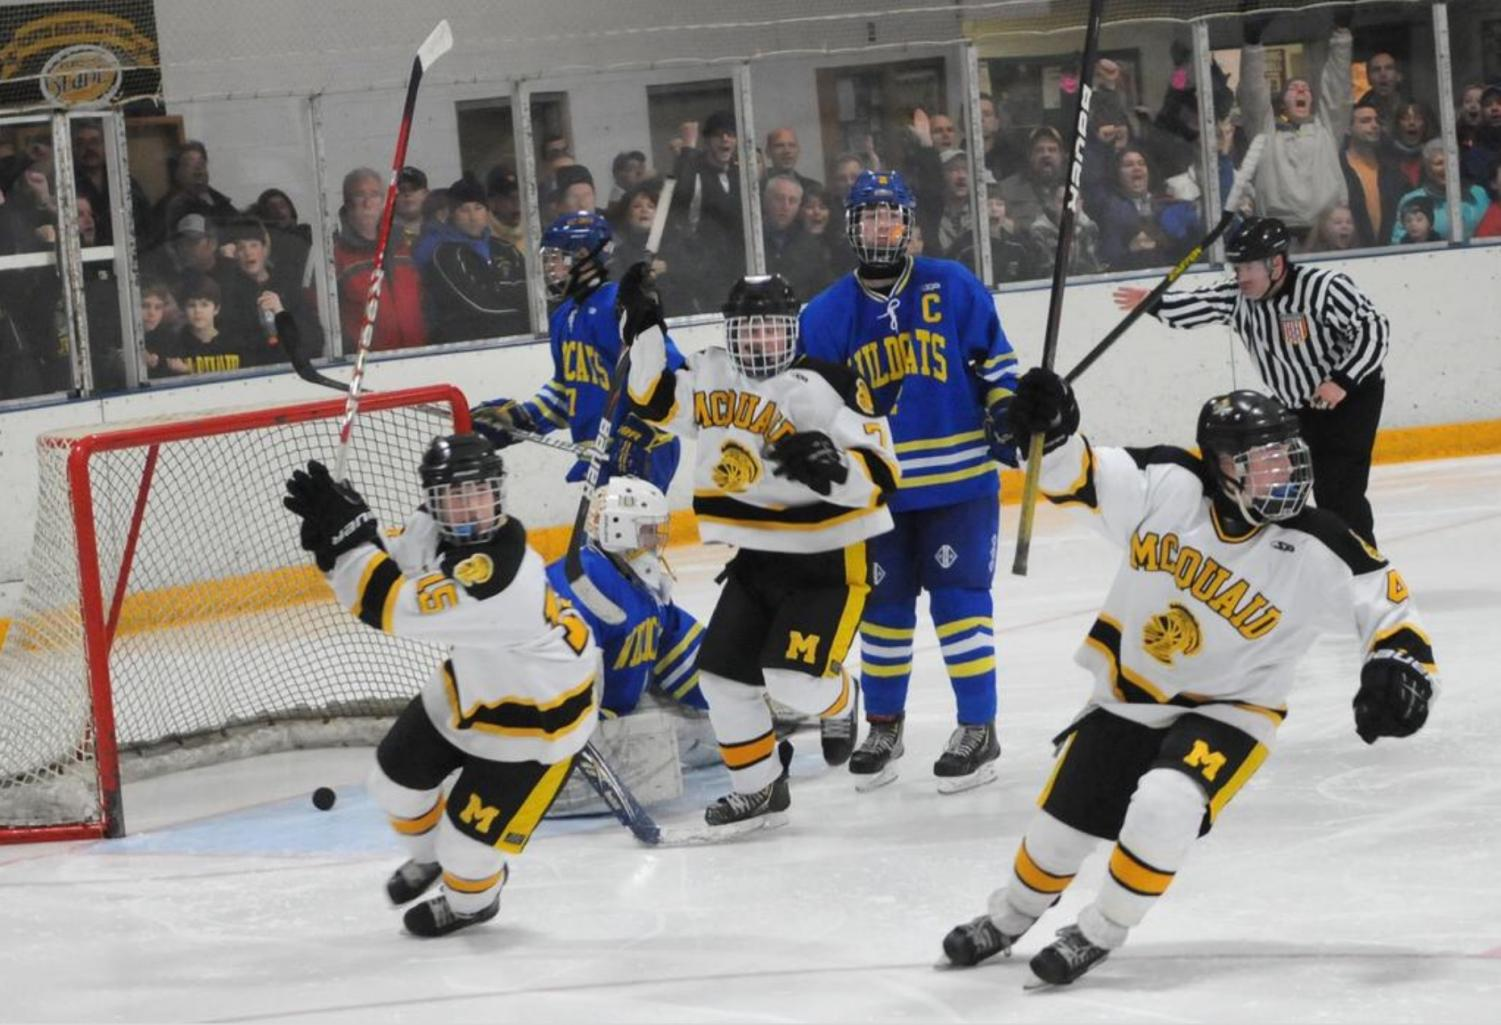 The Hockey Knights celebrate after a goal.